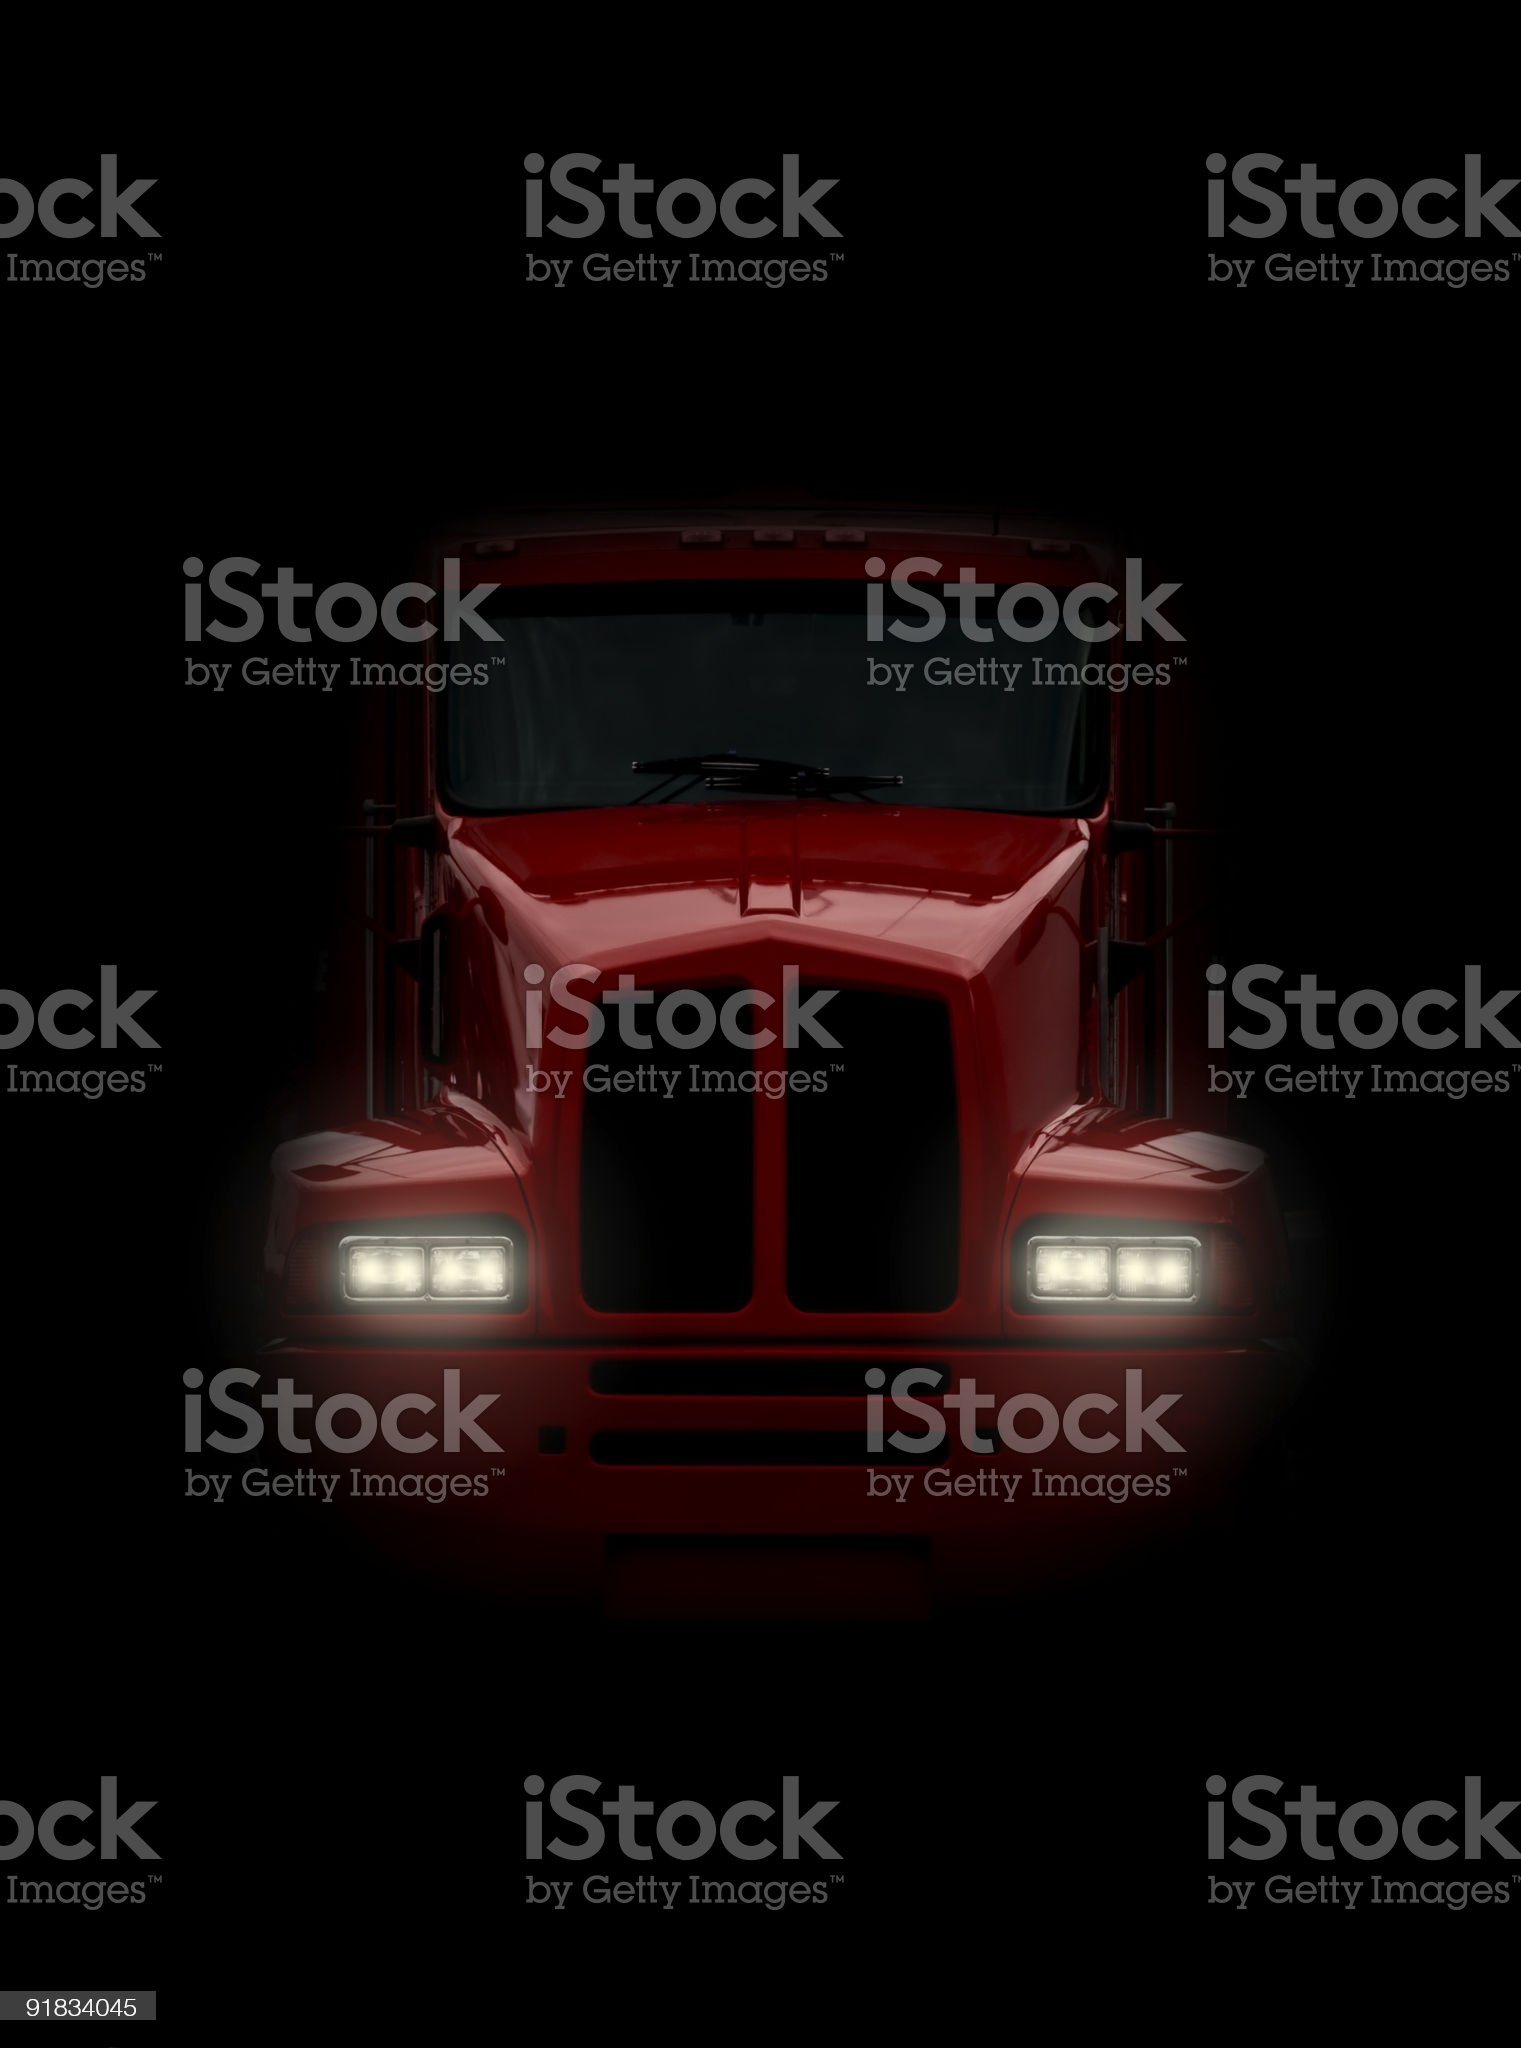 Truck coming head-on royalty-free stock photo